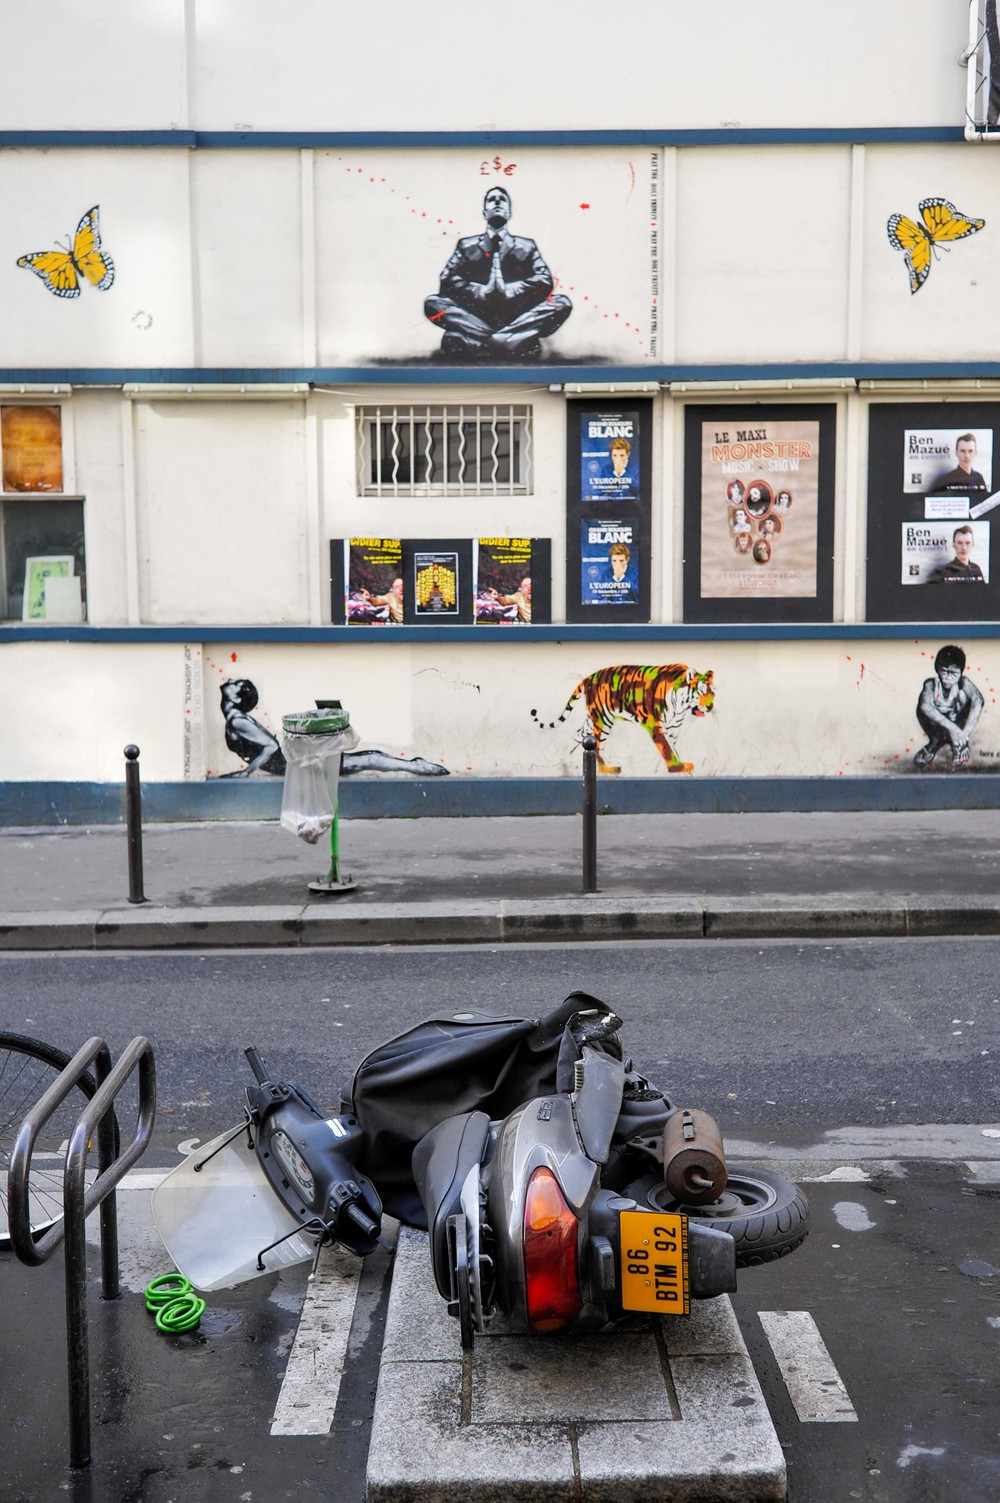 Paris_web_2014-1.jpg